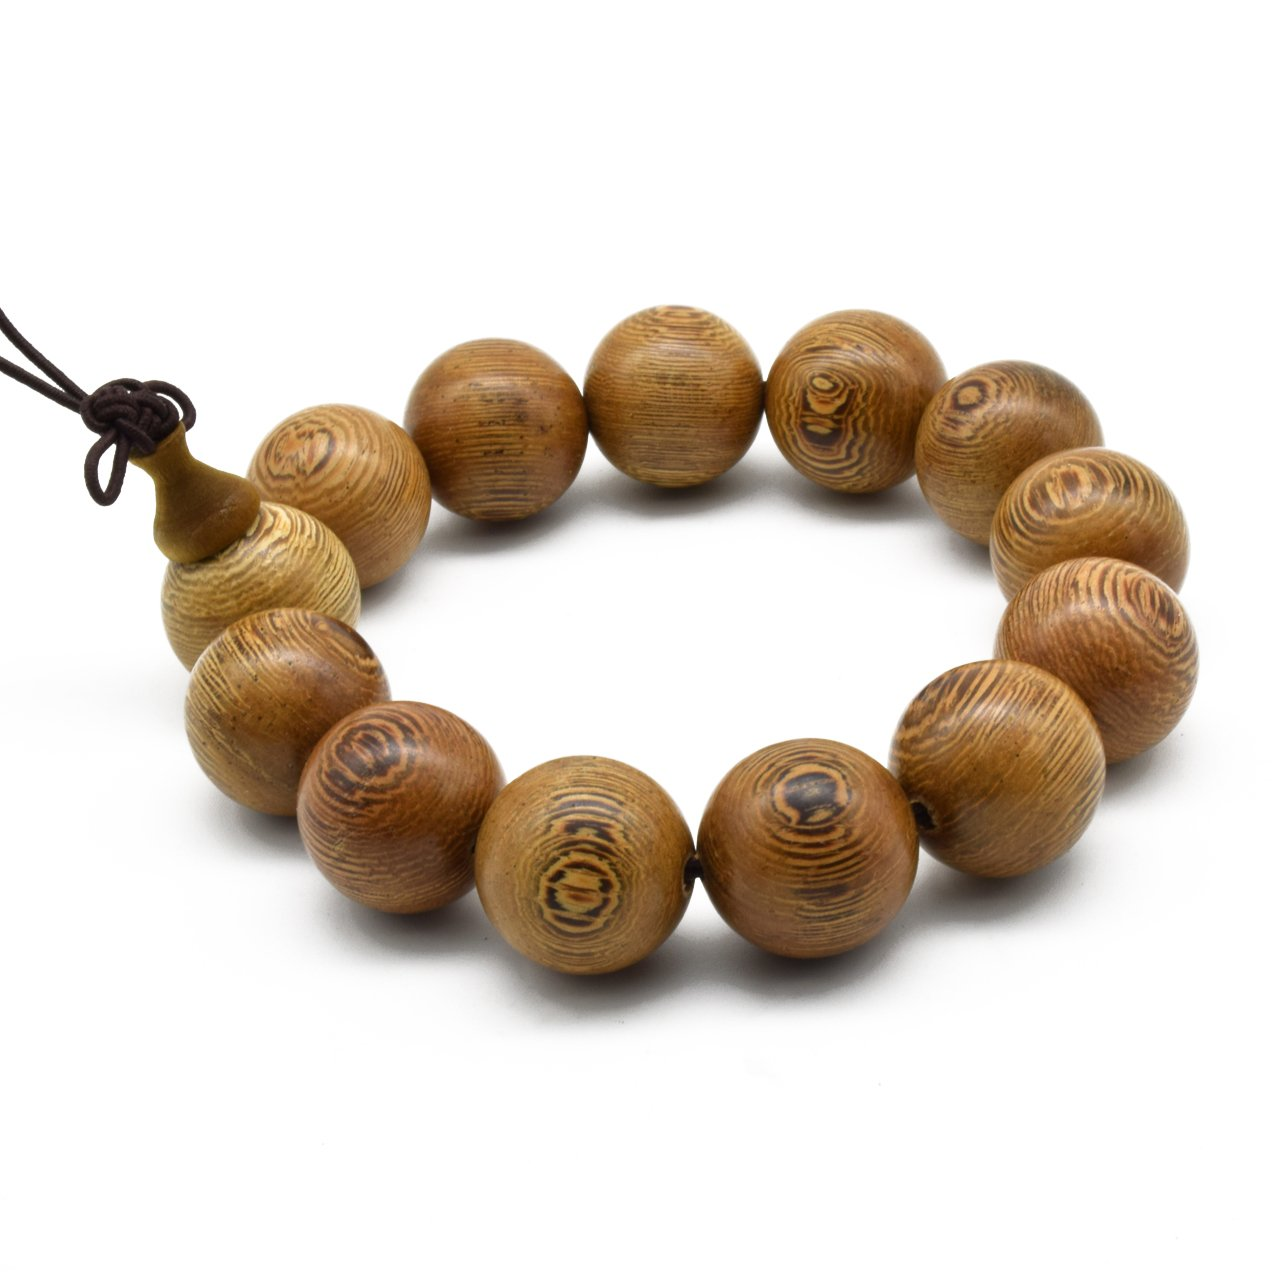 Zen Dear Unisex Natural Wenge Mala Prayer Beads Necklace Bracelet Meditation Buddhist Rosary Mala Beads ZD-WGW-00-00